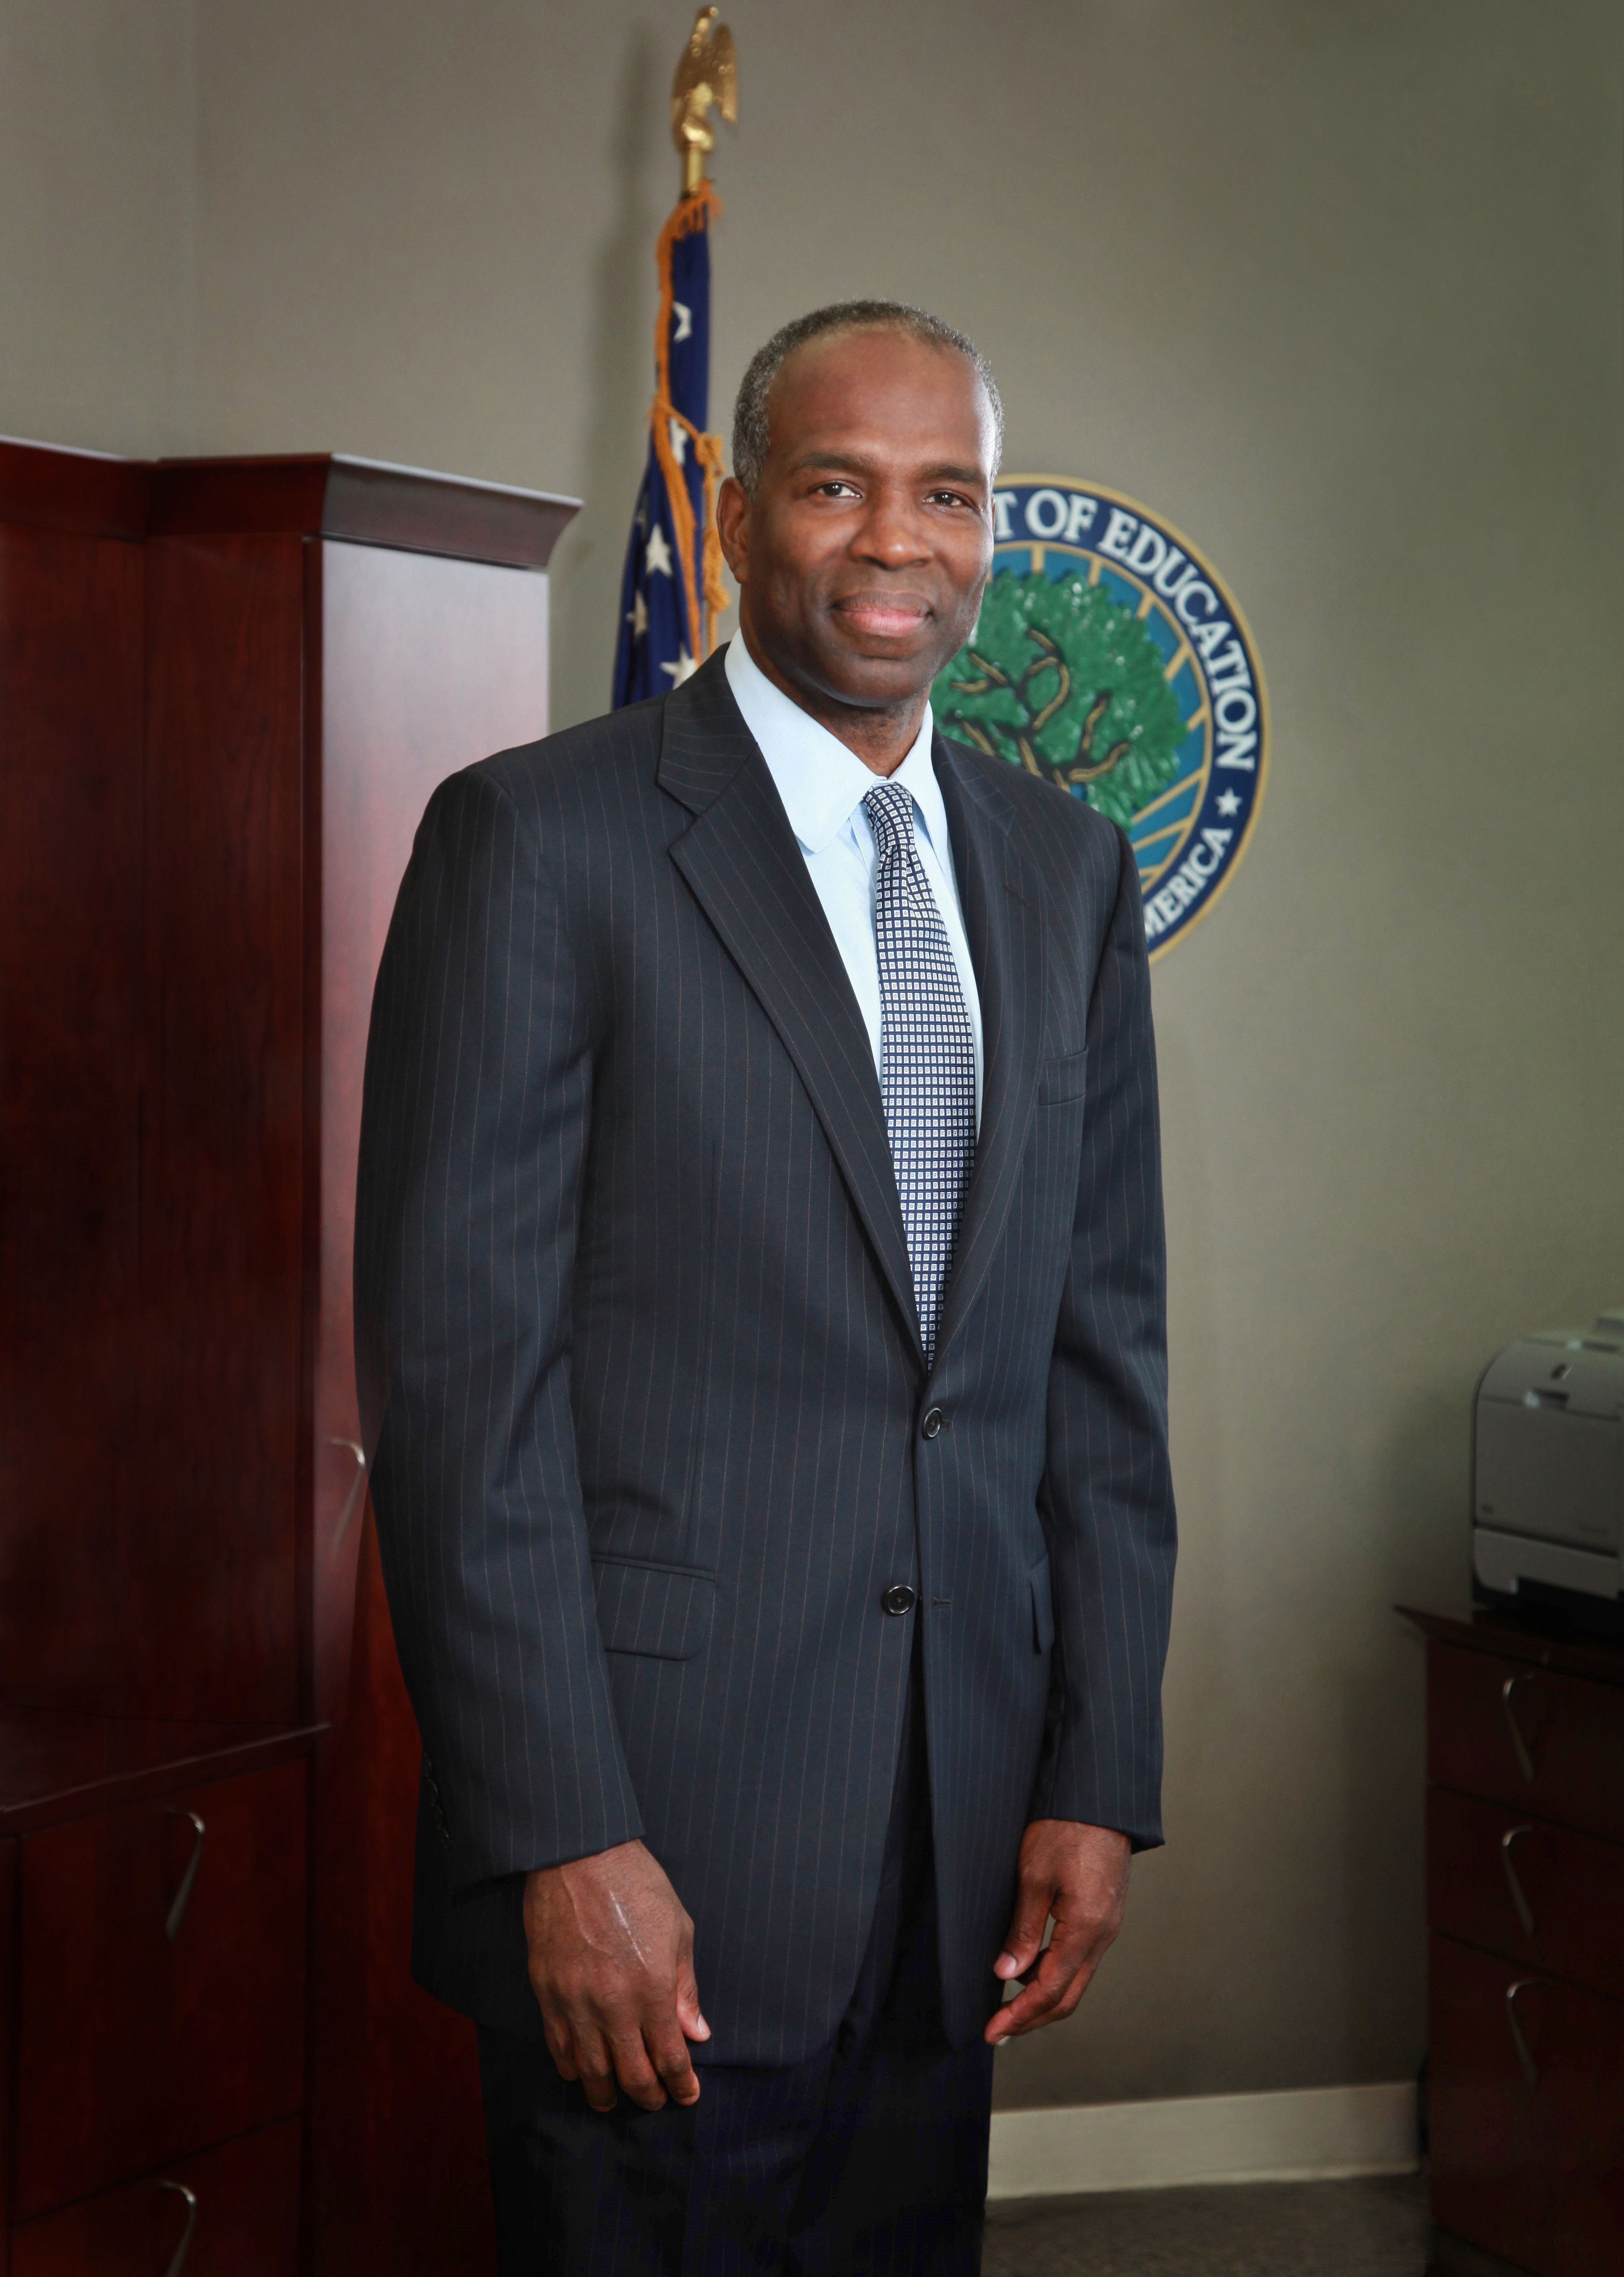 James Runcie will serve as the chief operating officer for the Education Department Federal Student Aid Office for the next t